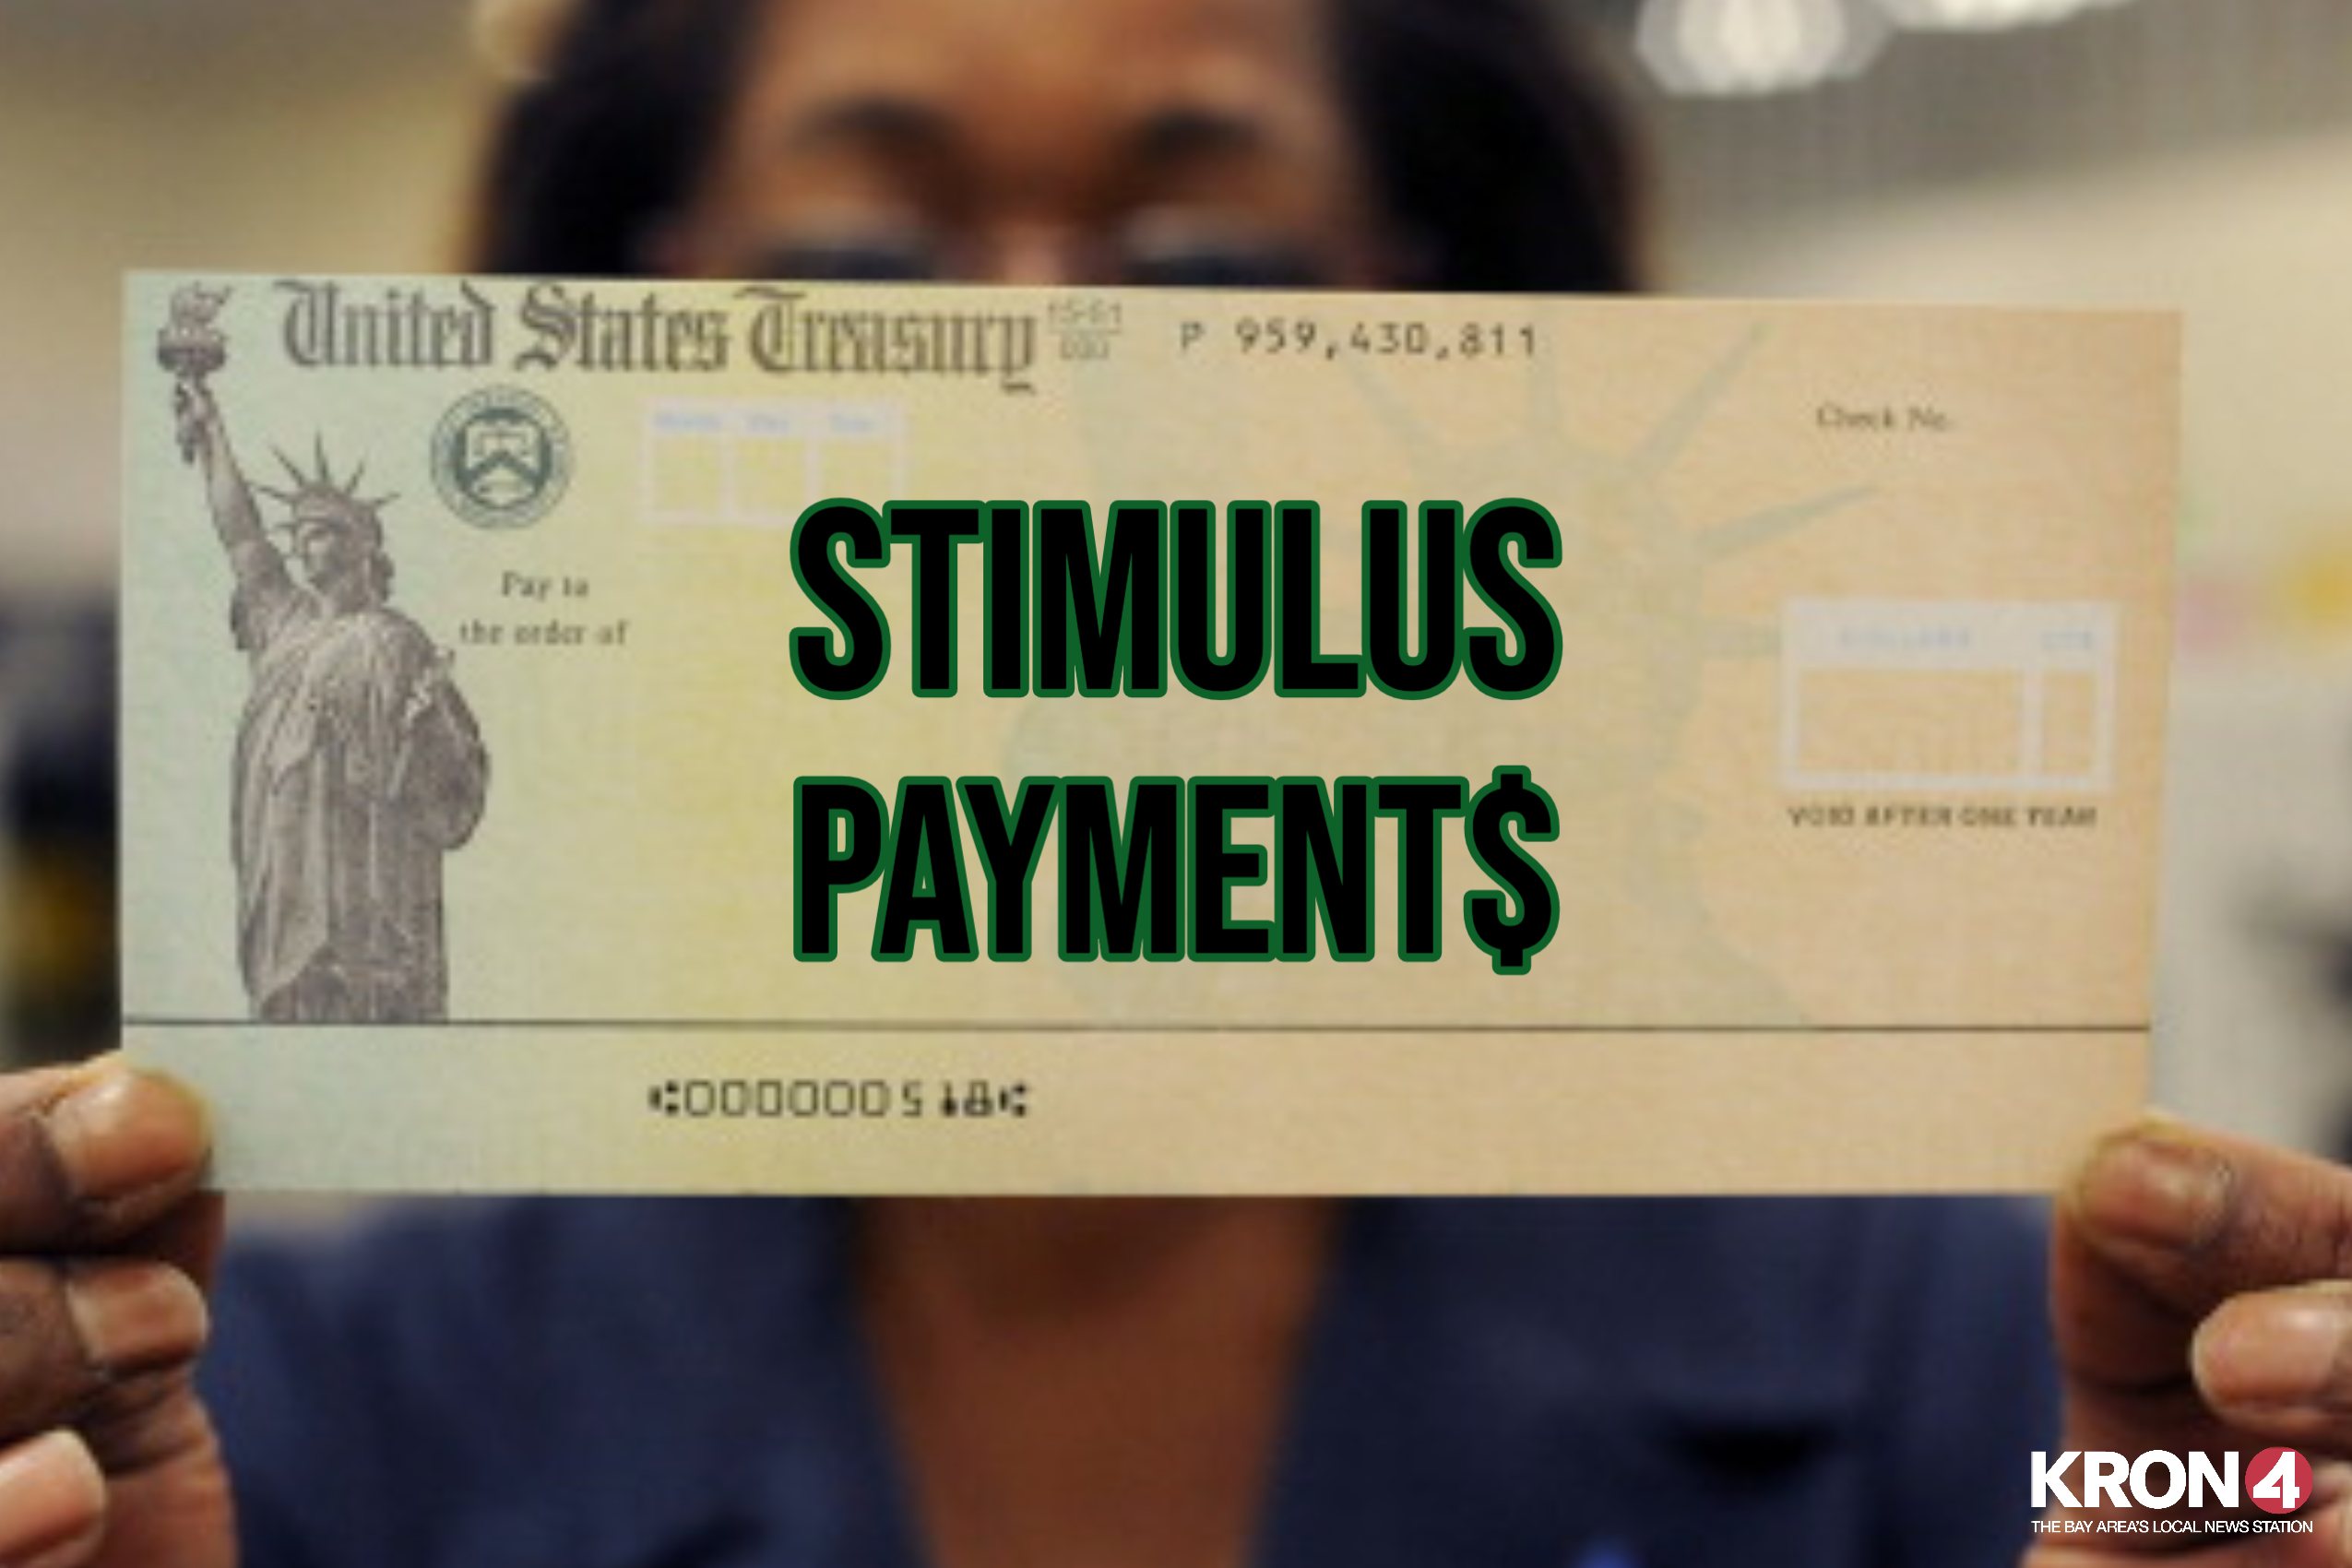 Irs To Launch Online Tool For People To Track Their Stimulus